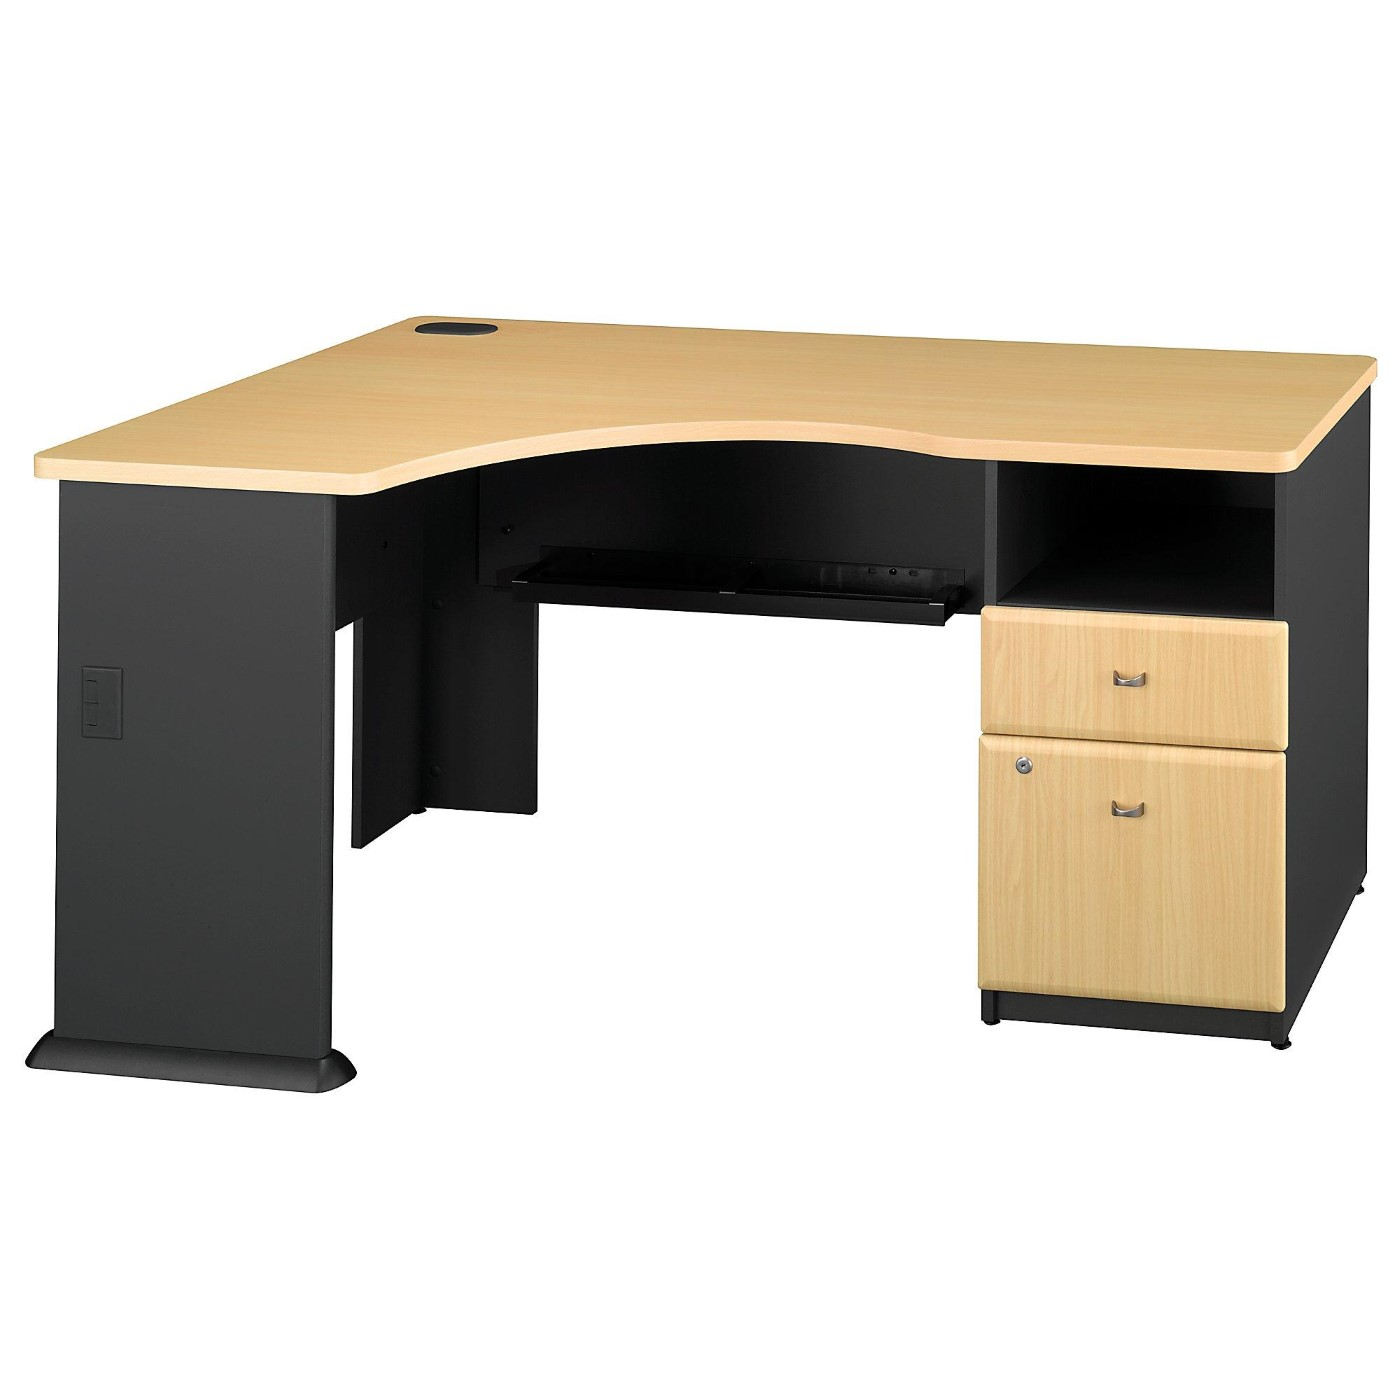 BUSH BUSINESS FURNITURE SERIES A CORNER DESK WITH 2 DRAWER PEDESTAL. FREE SHIPPING</font></b></font>&#x1F384<font color=red><b>ERGONOMICHOME HOLIDAY SALE - ENDS DEC. 17, 2019</b></font>&#x1F384